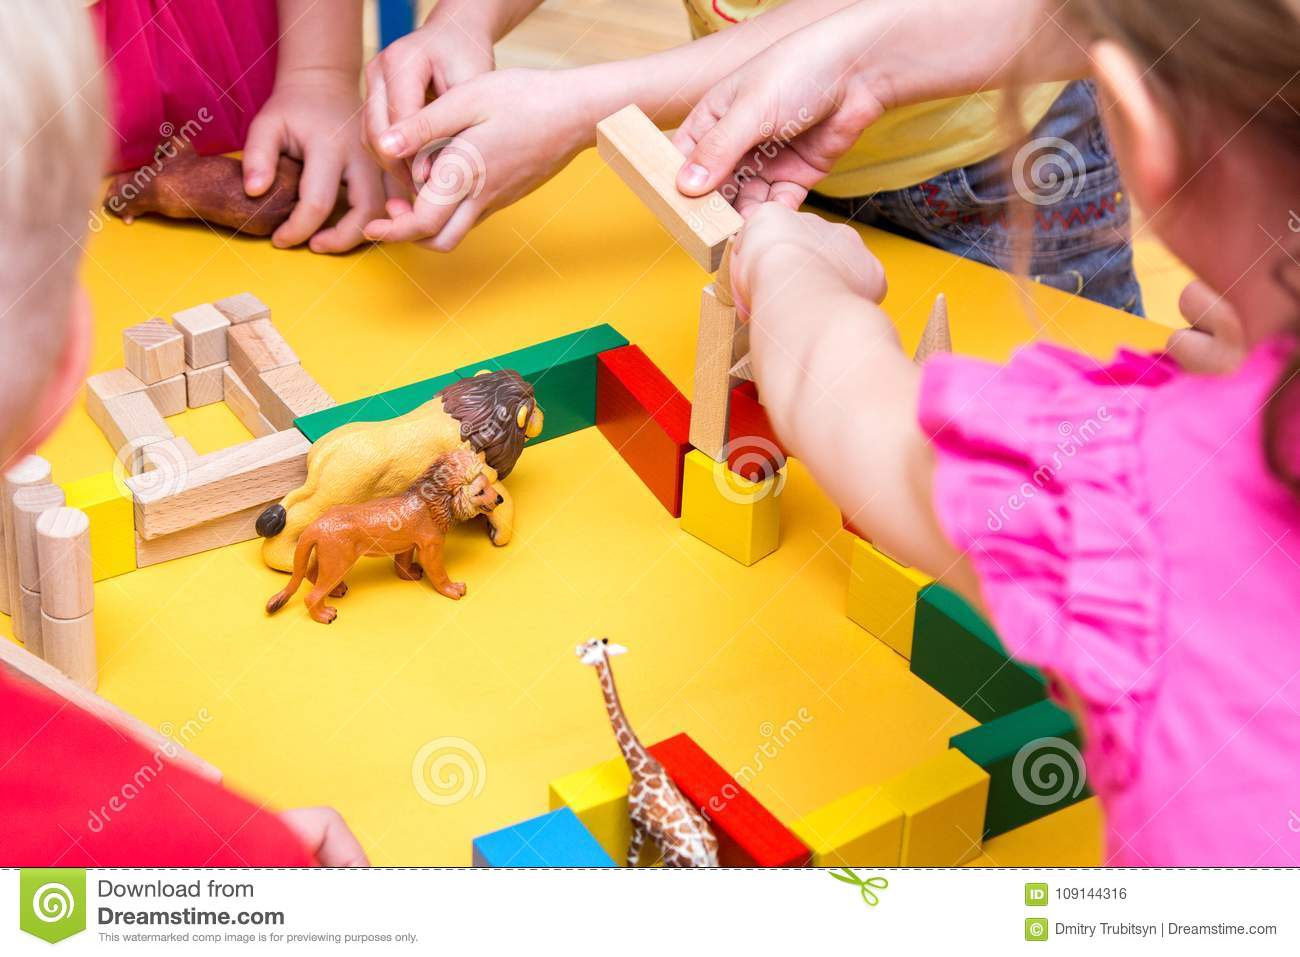 Children Build A Zoo Of Wooden Bricks On Table Stock Photo - Image